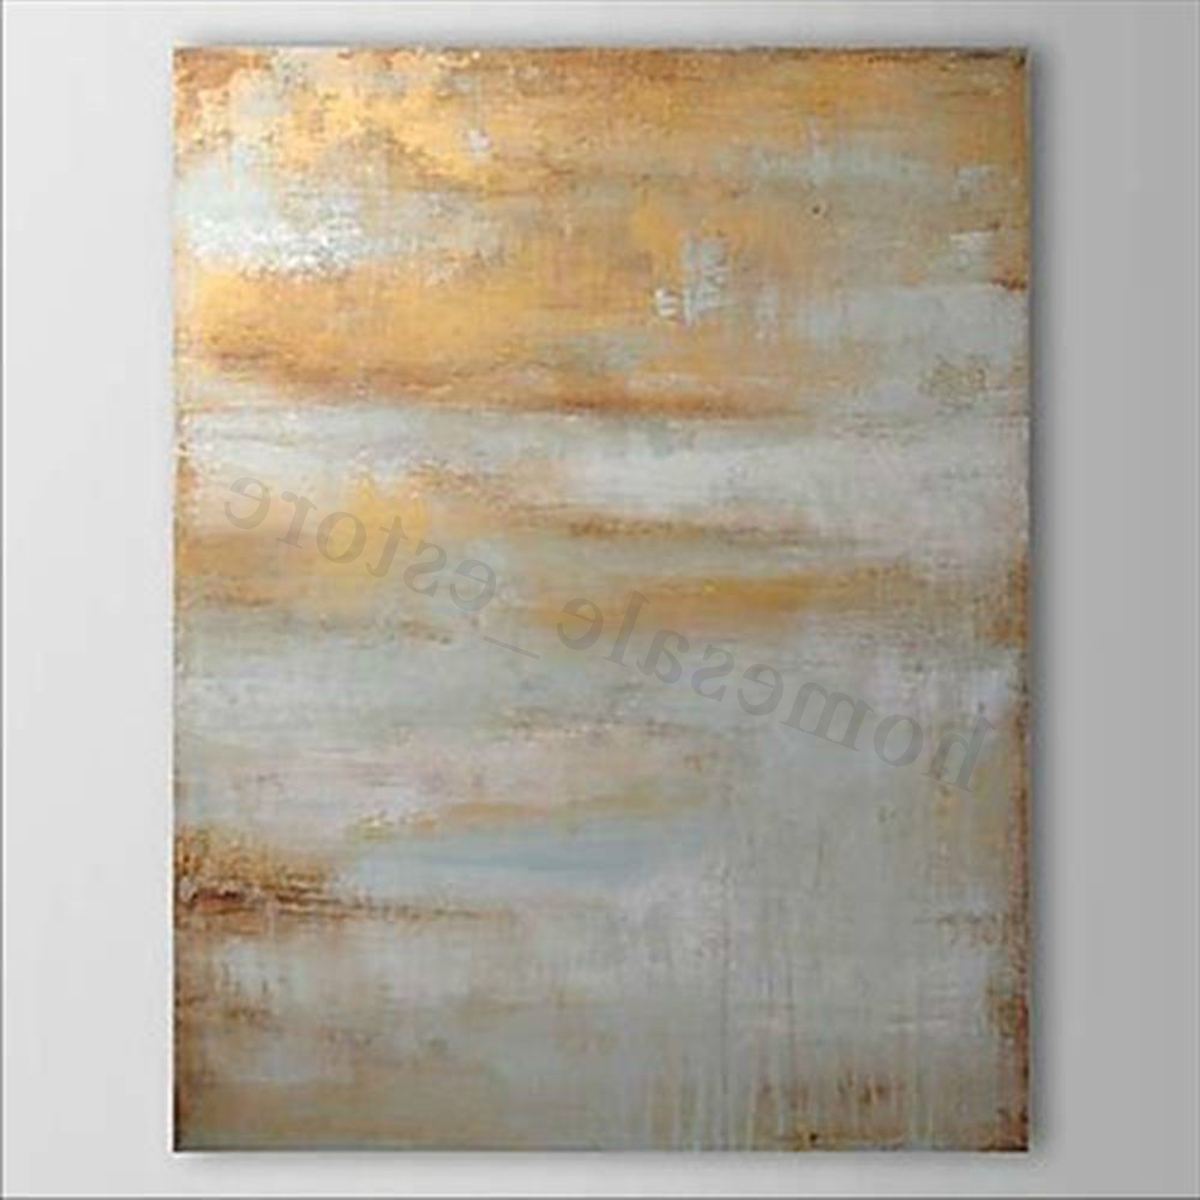 Preferred Modern Painting Canvas Wall Art With Modern Abstract Oil Painting Canvas Wall Art Poster Print Picture (View 15 of 20)